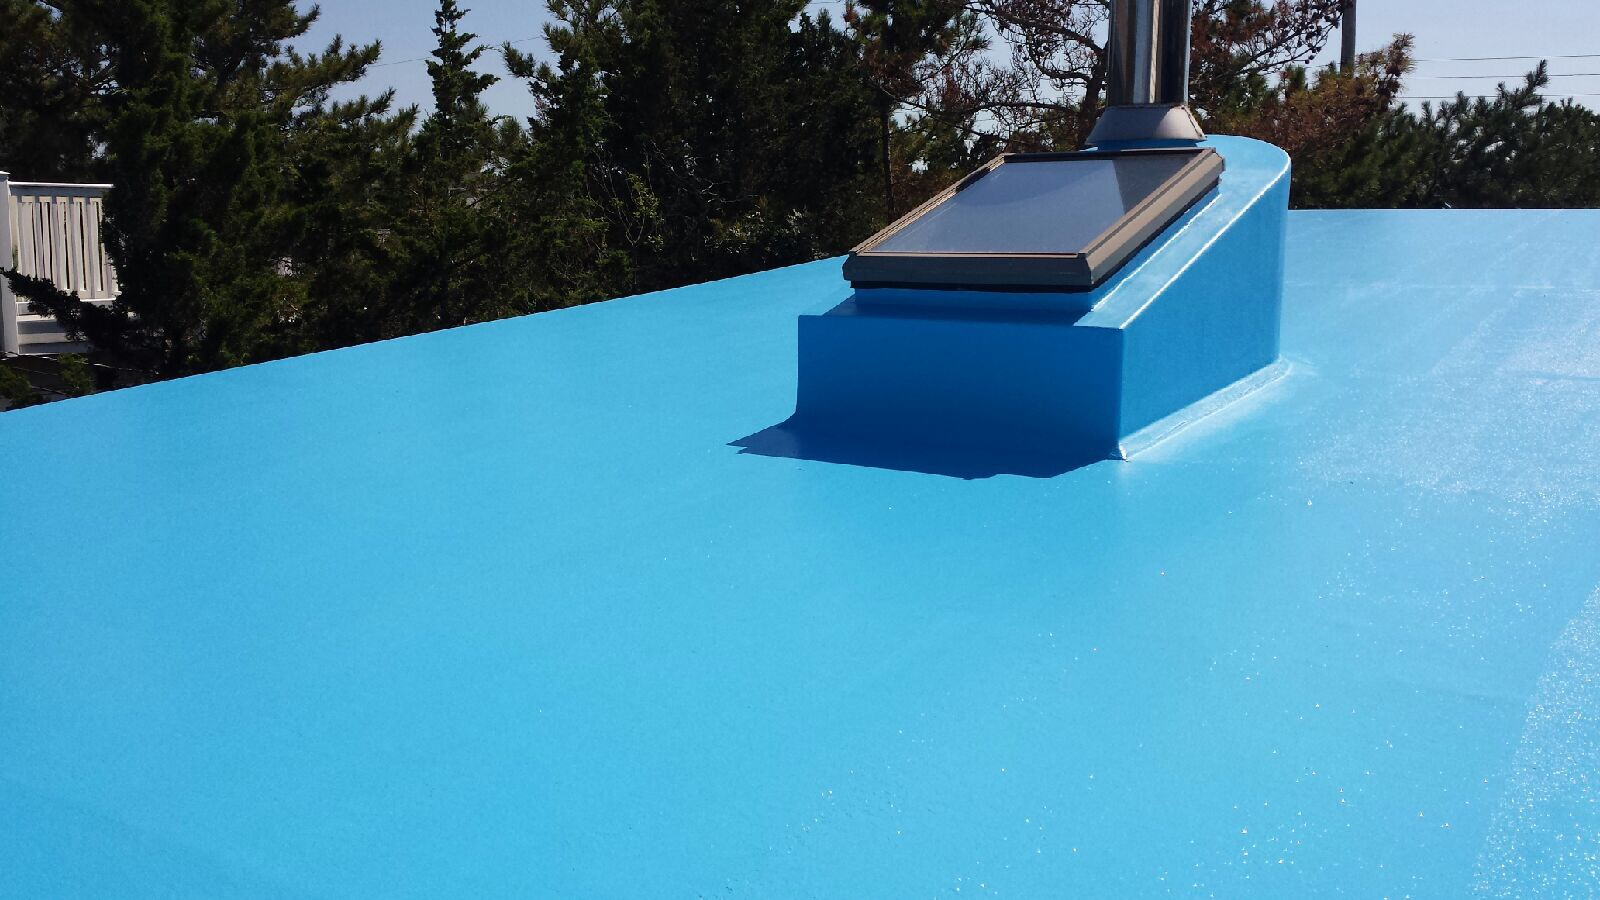 Give Us A Call For All Of Your Fiberglass Deck And Roof Recoating And  Custom Gelcoat Coloring.